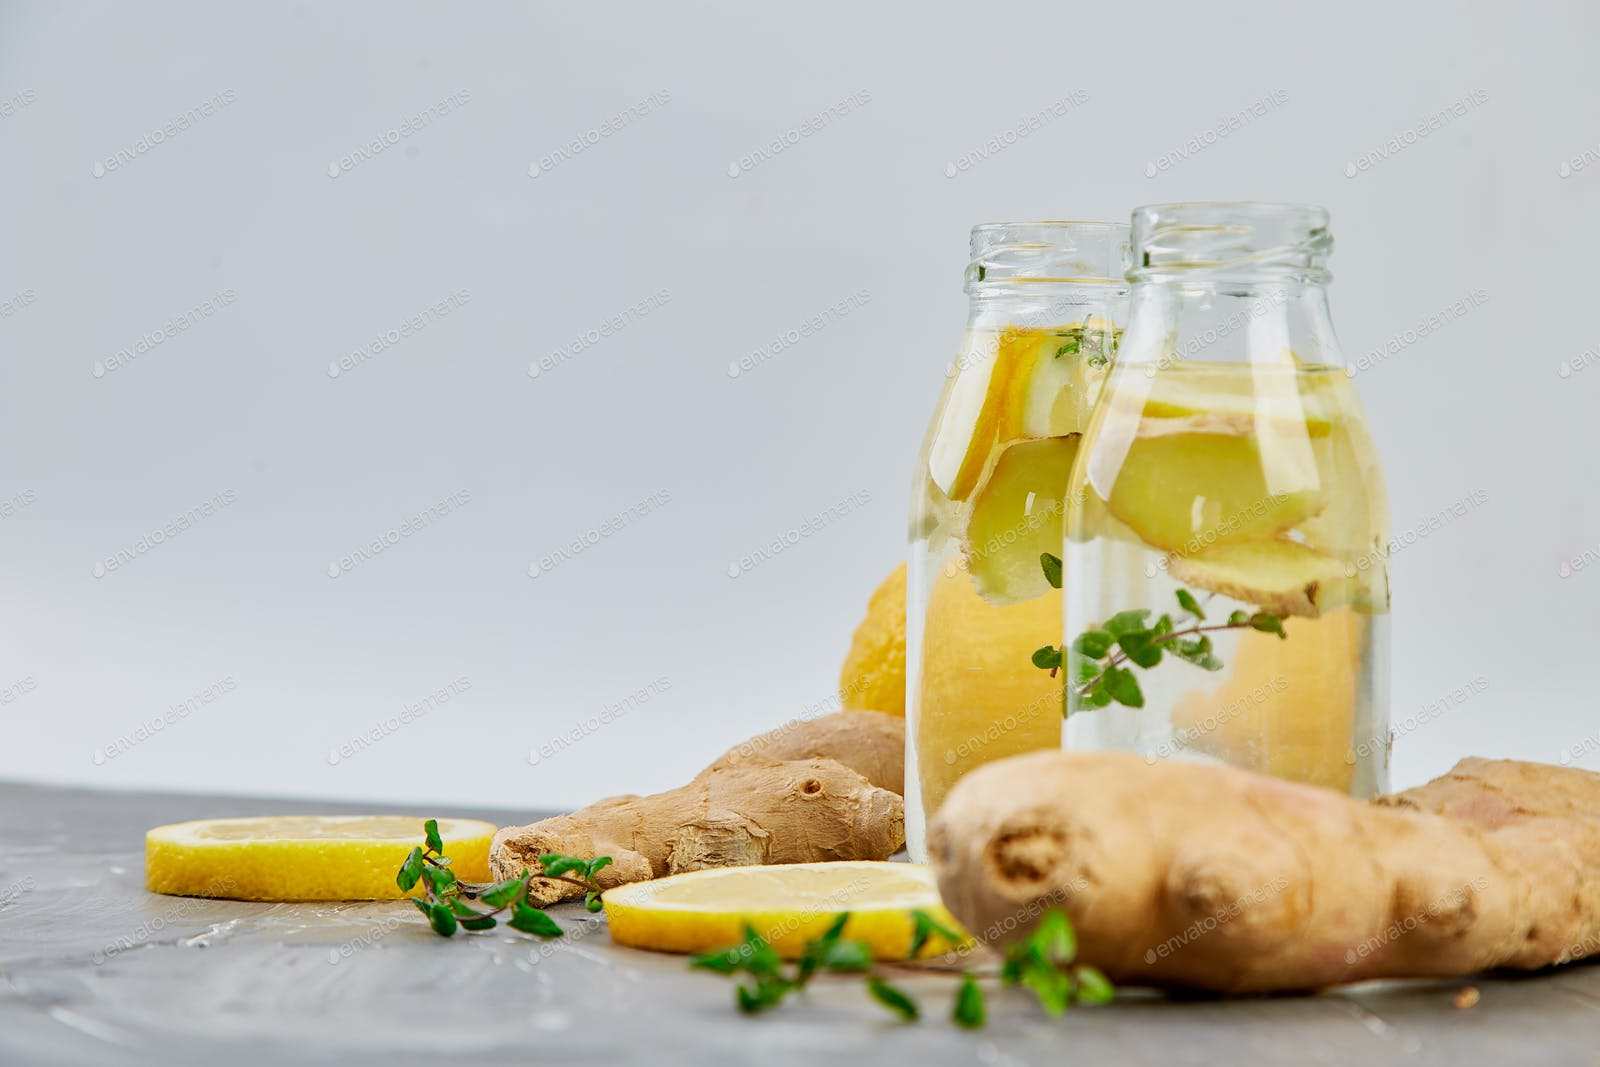 Detox Water In Bottles With Ingredients Ginger Lemon Mint Photo By